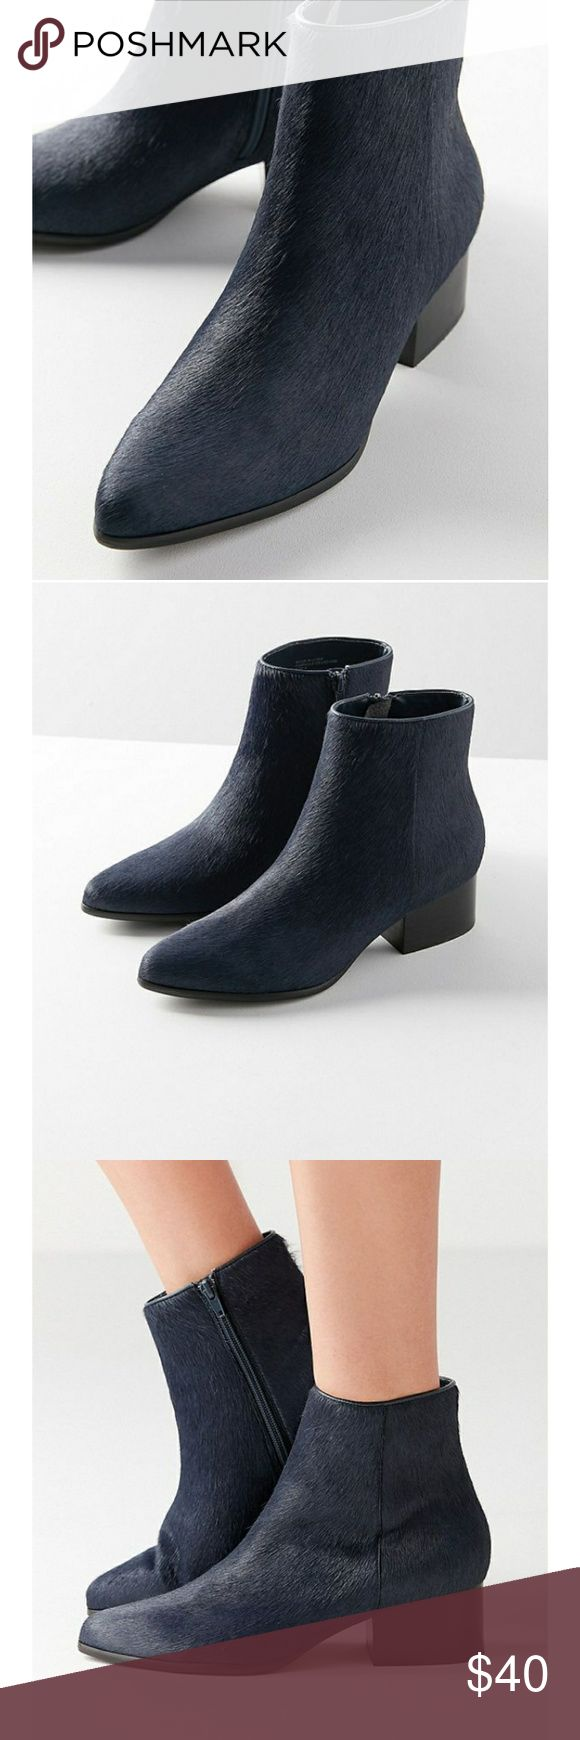 Calf hair pola boots Brand new boots!! Super slick! Chic! And fun... let me know if you have any questions. I'm on to offers   Size: us 7 Uk 5 EU: 38  Color: navy Urban Outfitters Shoes Ankle Boots & Booties